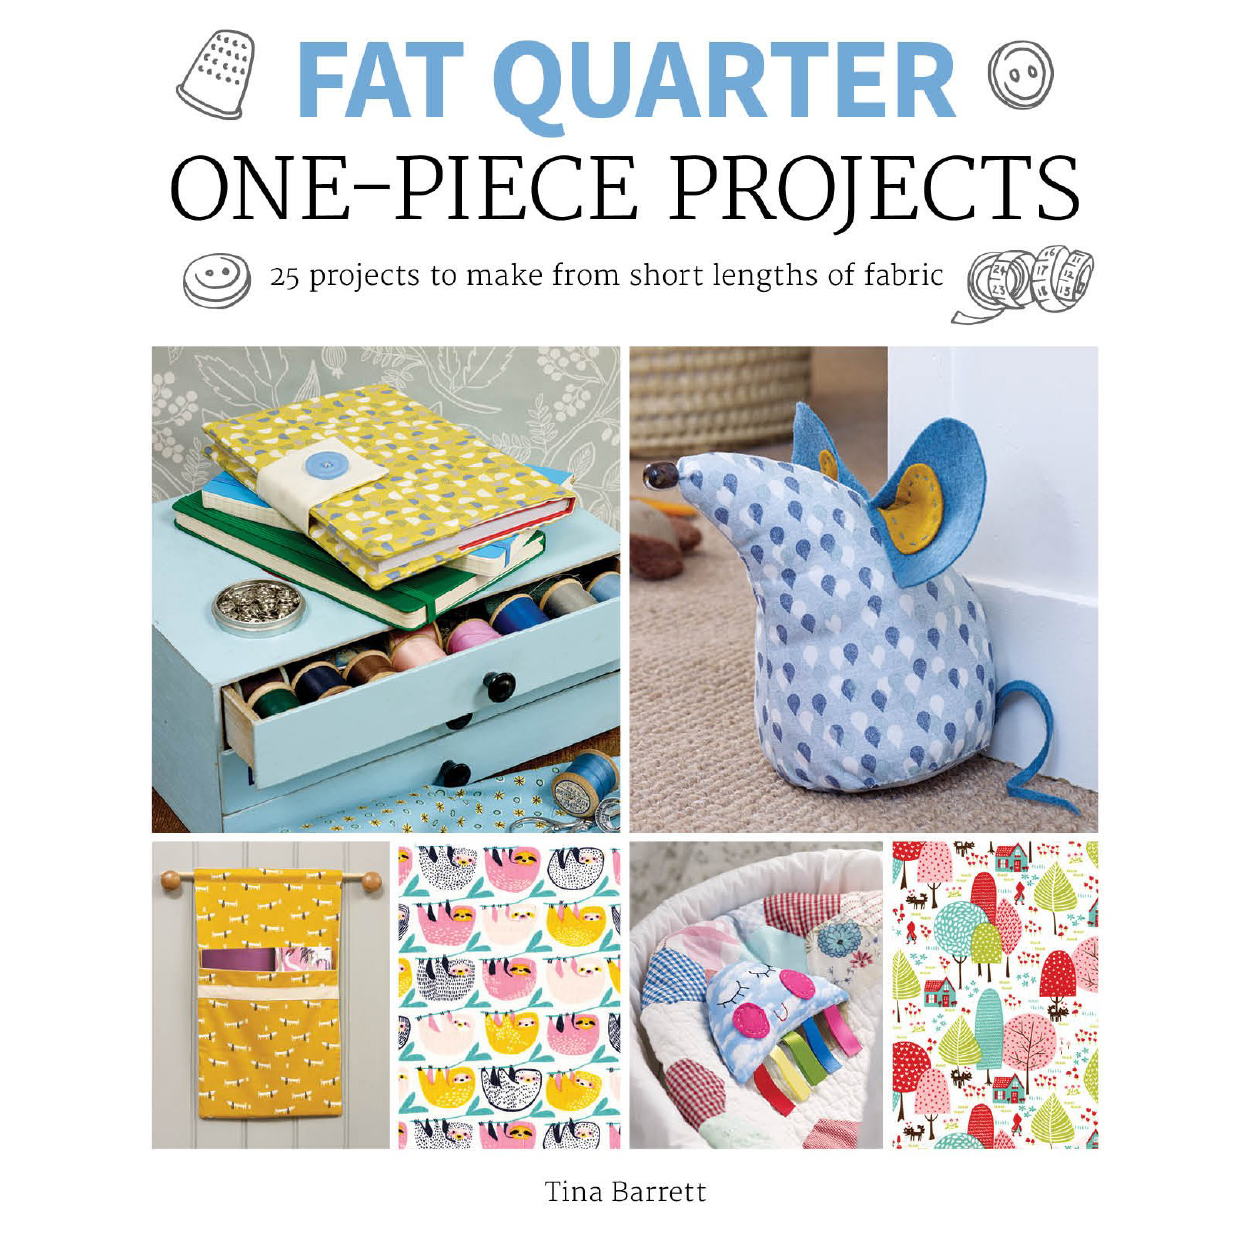 Fat Quarter One-Piece Projects